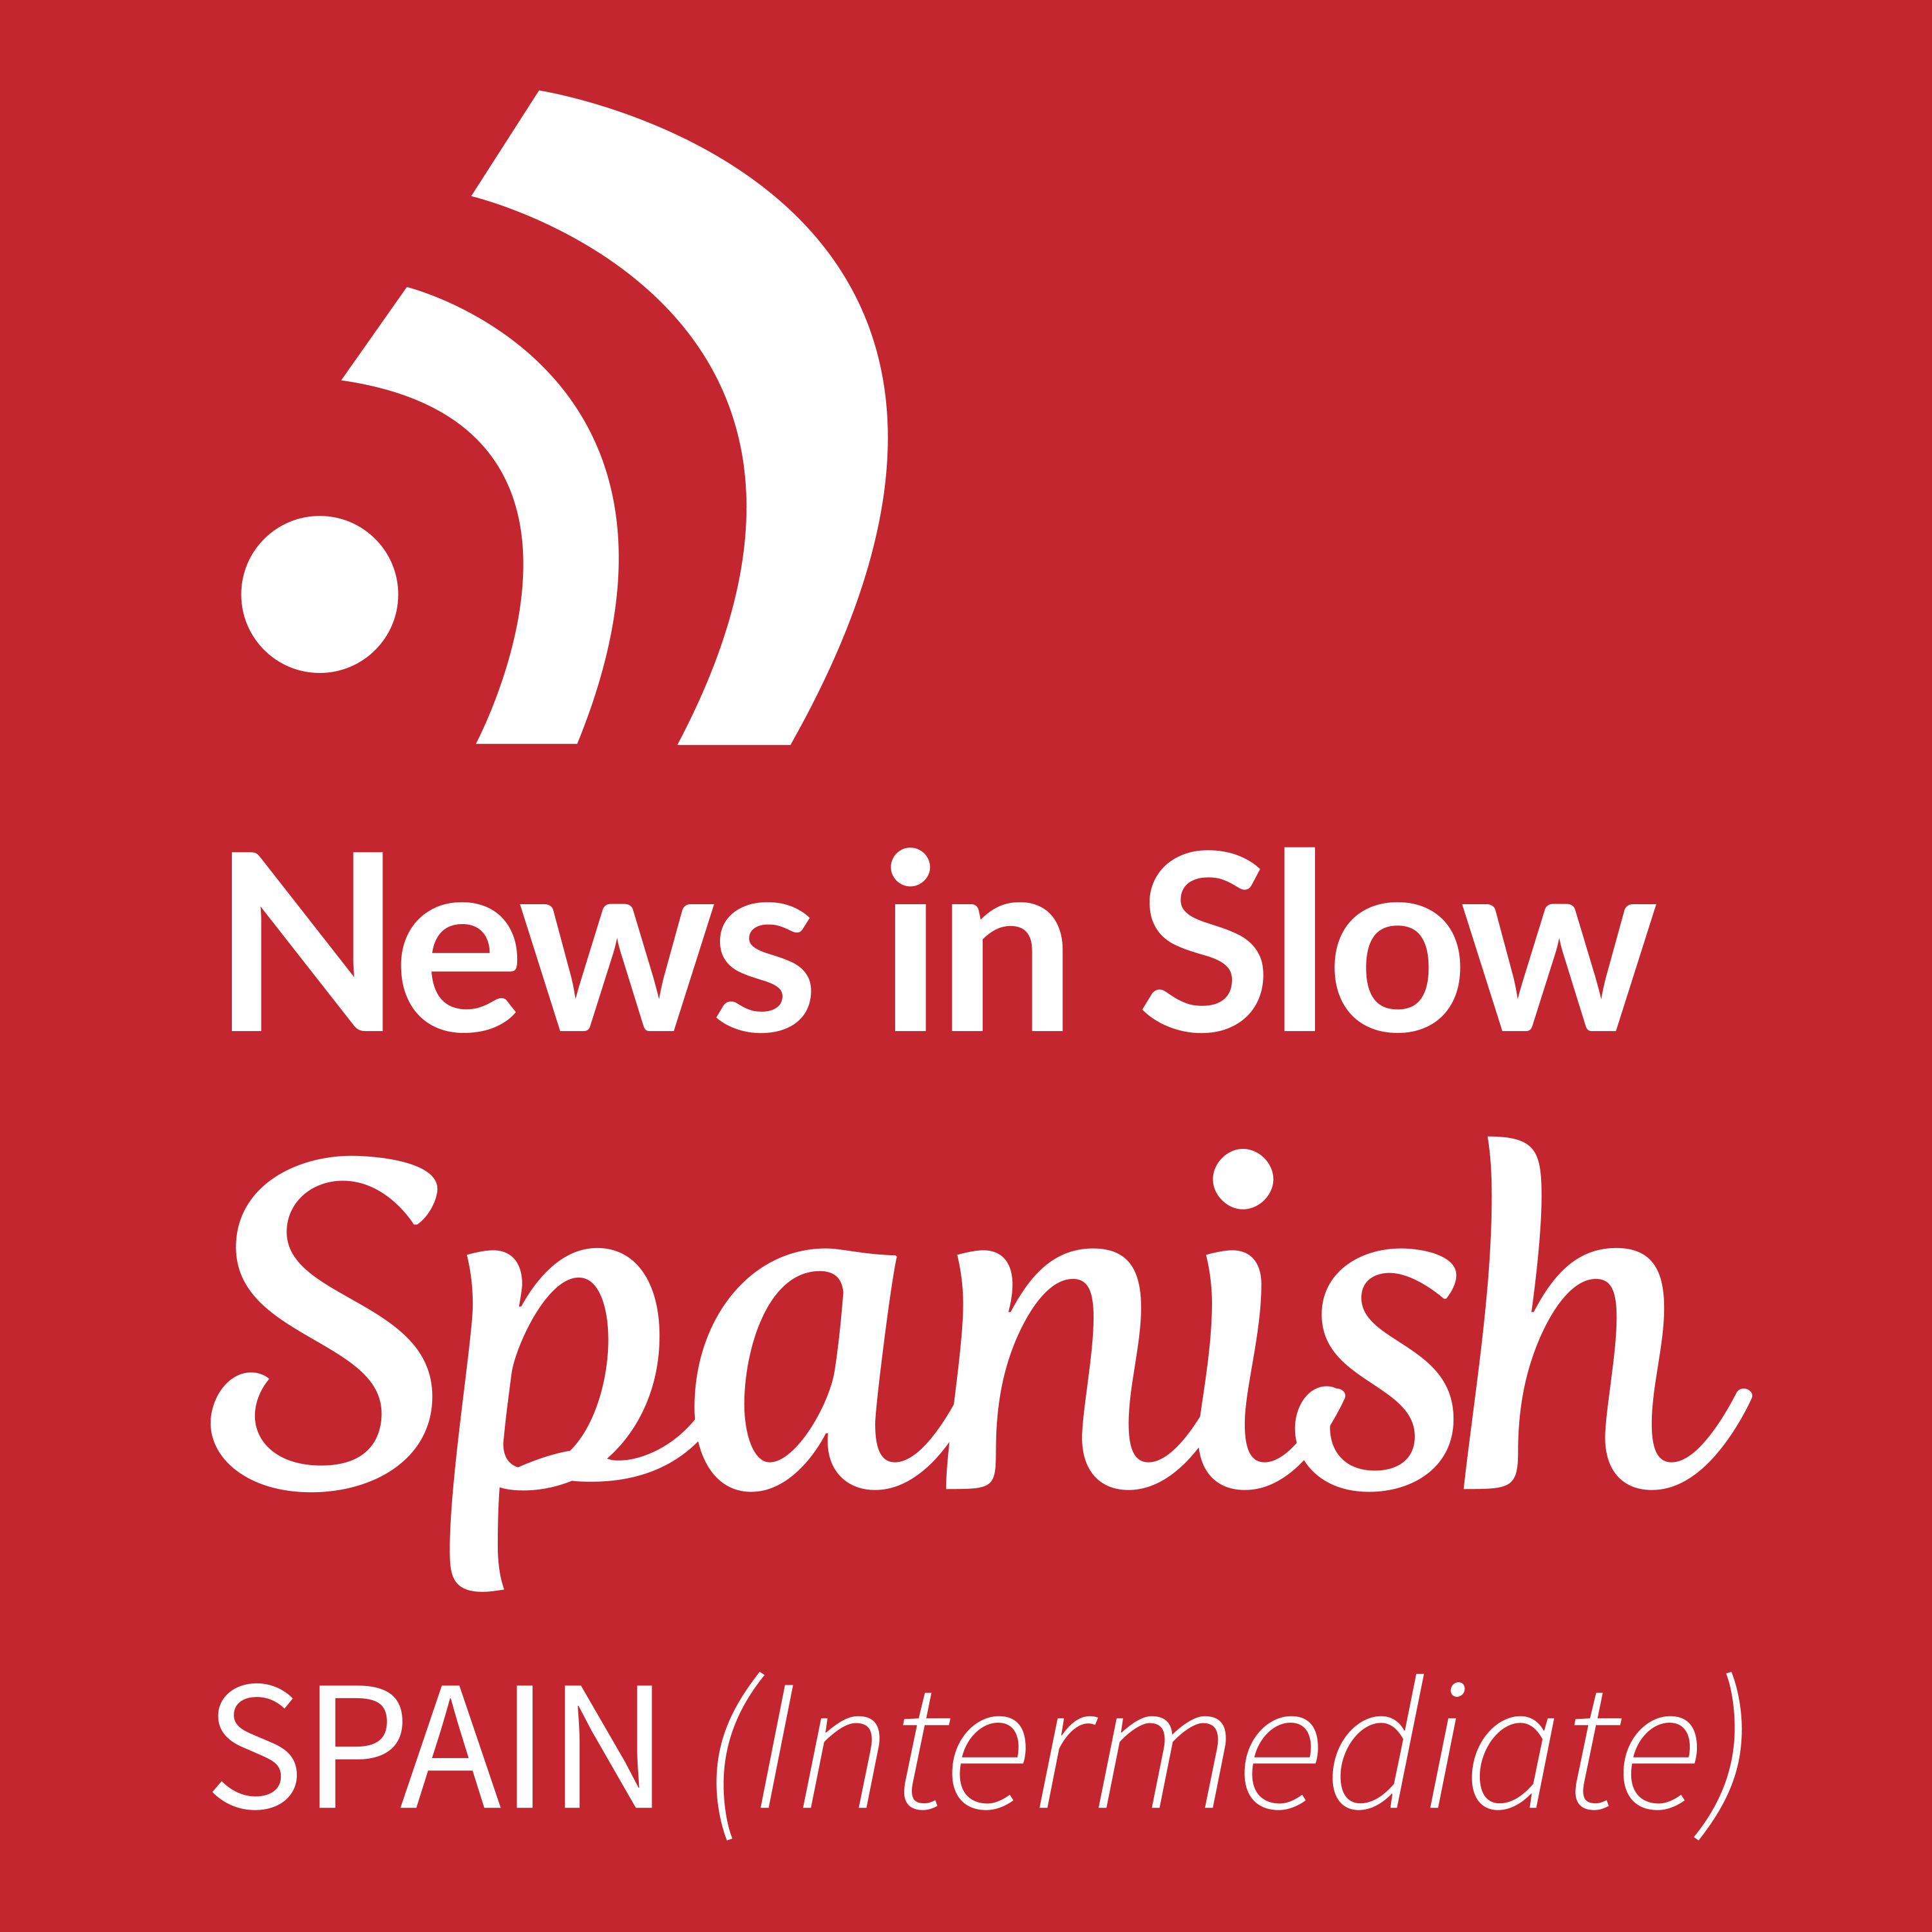 News in Slow Spanish - #395 - Learn Spanish through current events